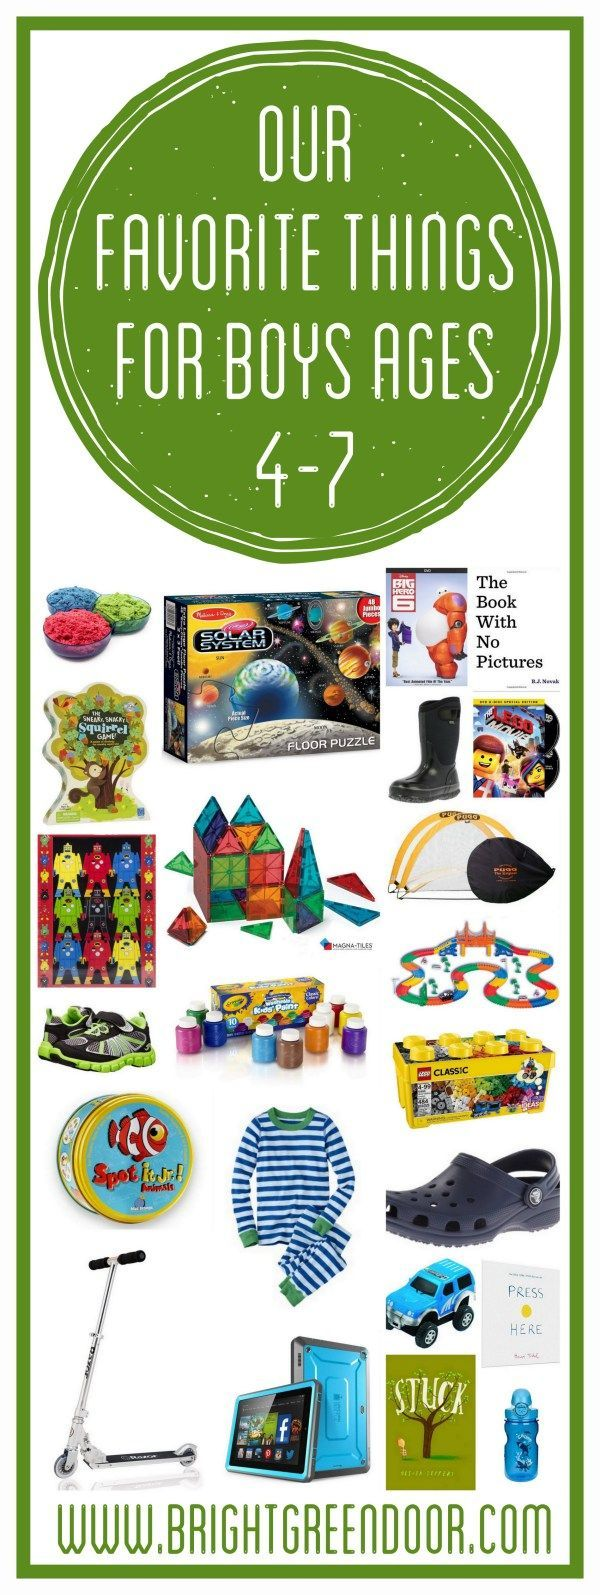 Gift Ideas for Little Boys Gifts for Boys www.BrightGreenDoor.com